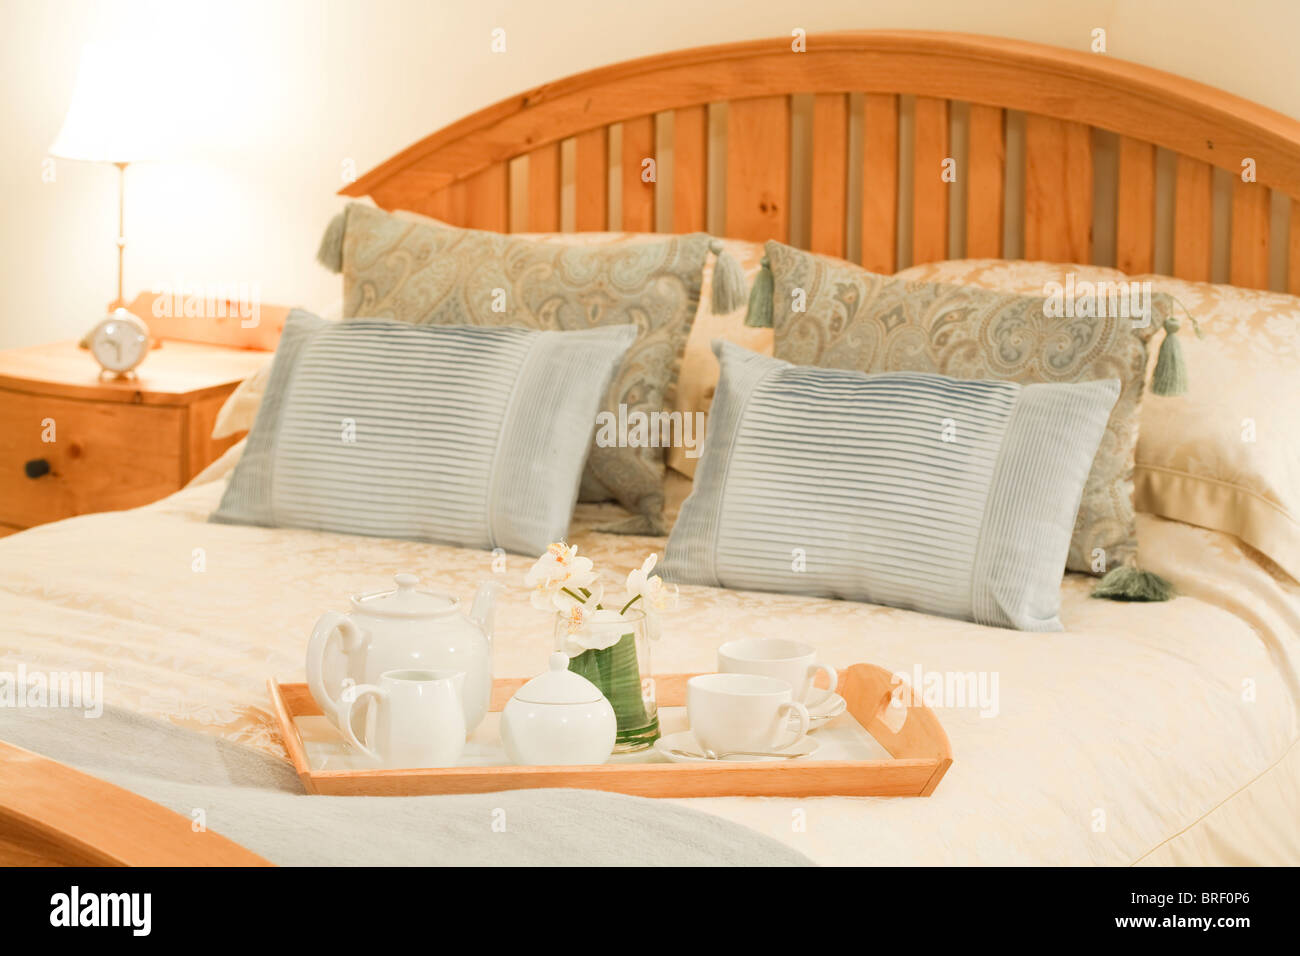 Room service tray on a bed in a luxury hotel bedroom with cozy bedlinen - Stock Image